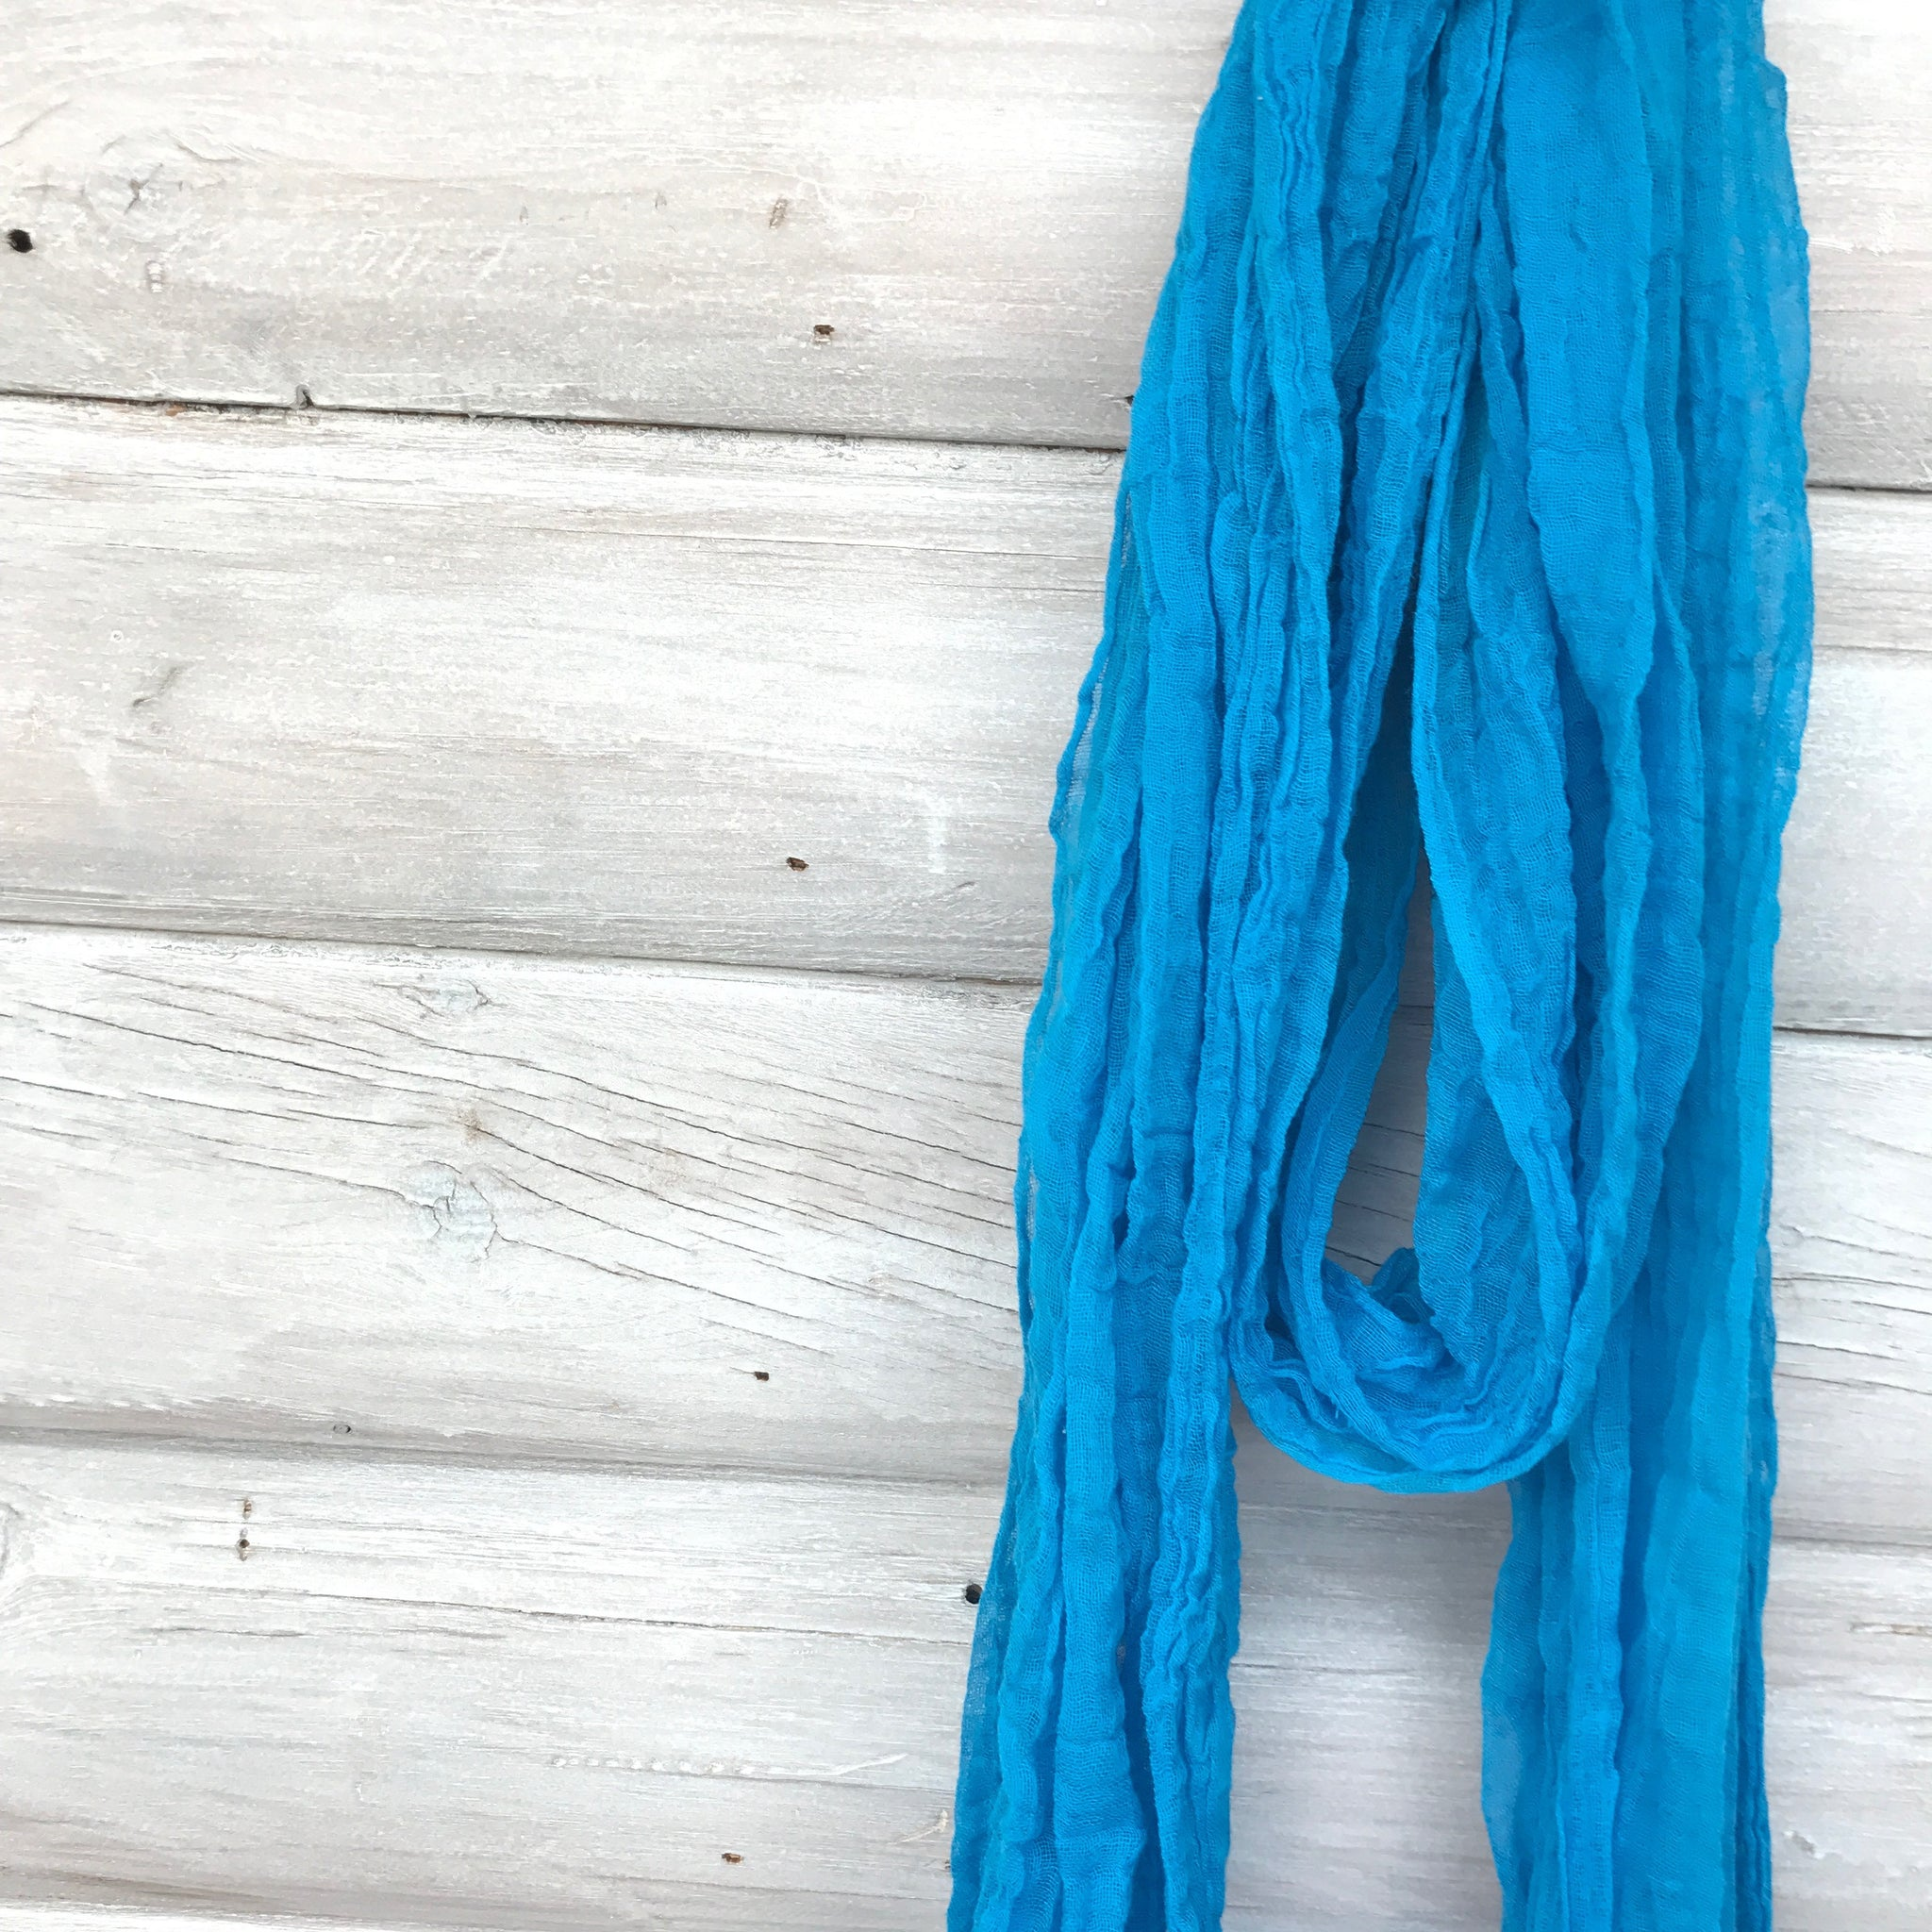 Cotton Scarf in Tennis Shoe Blue by Scarfshop - Upstate MN